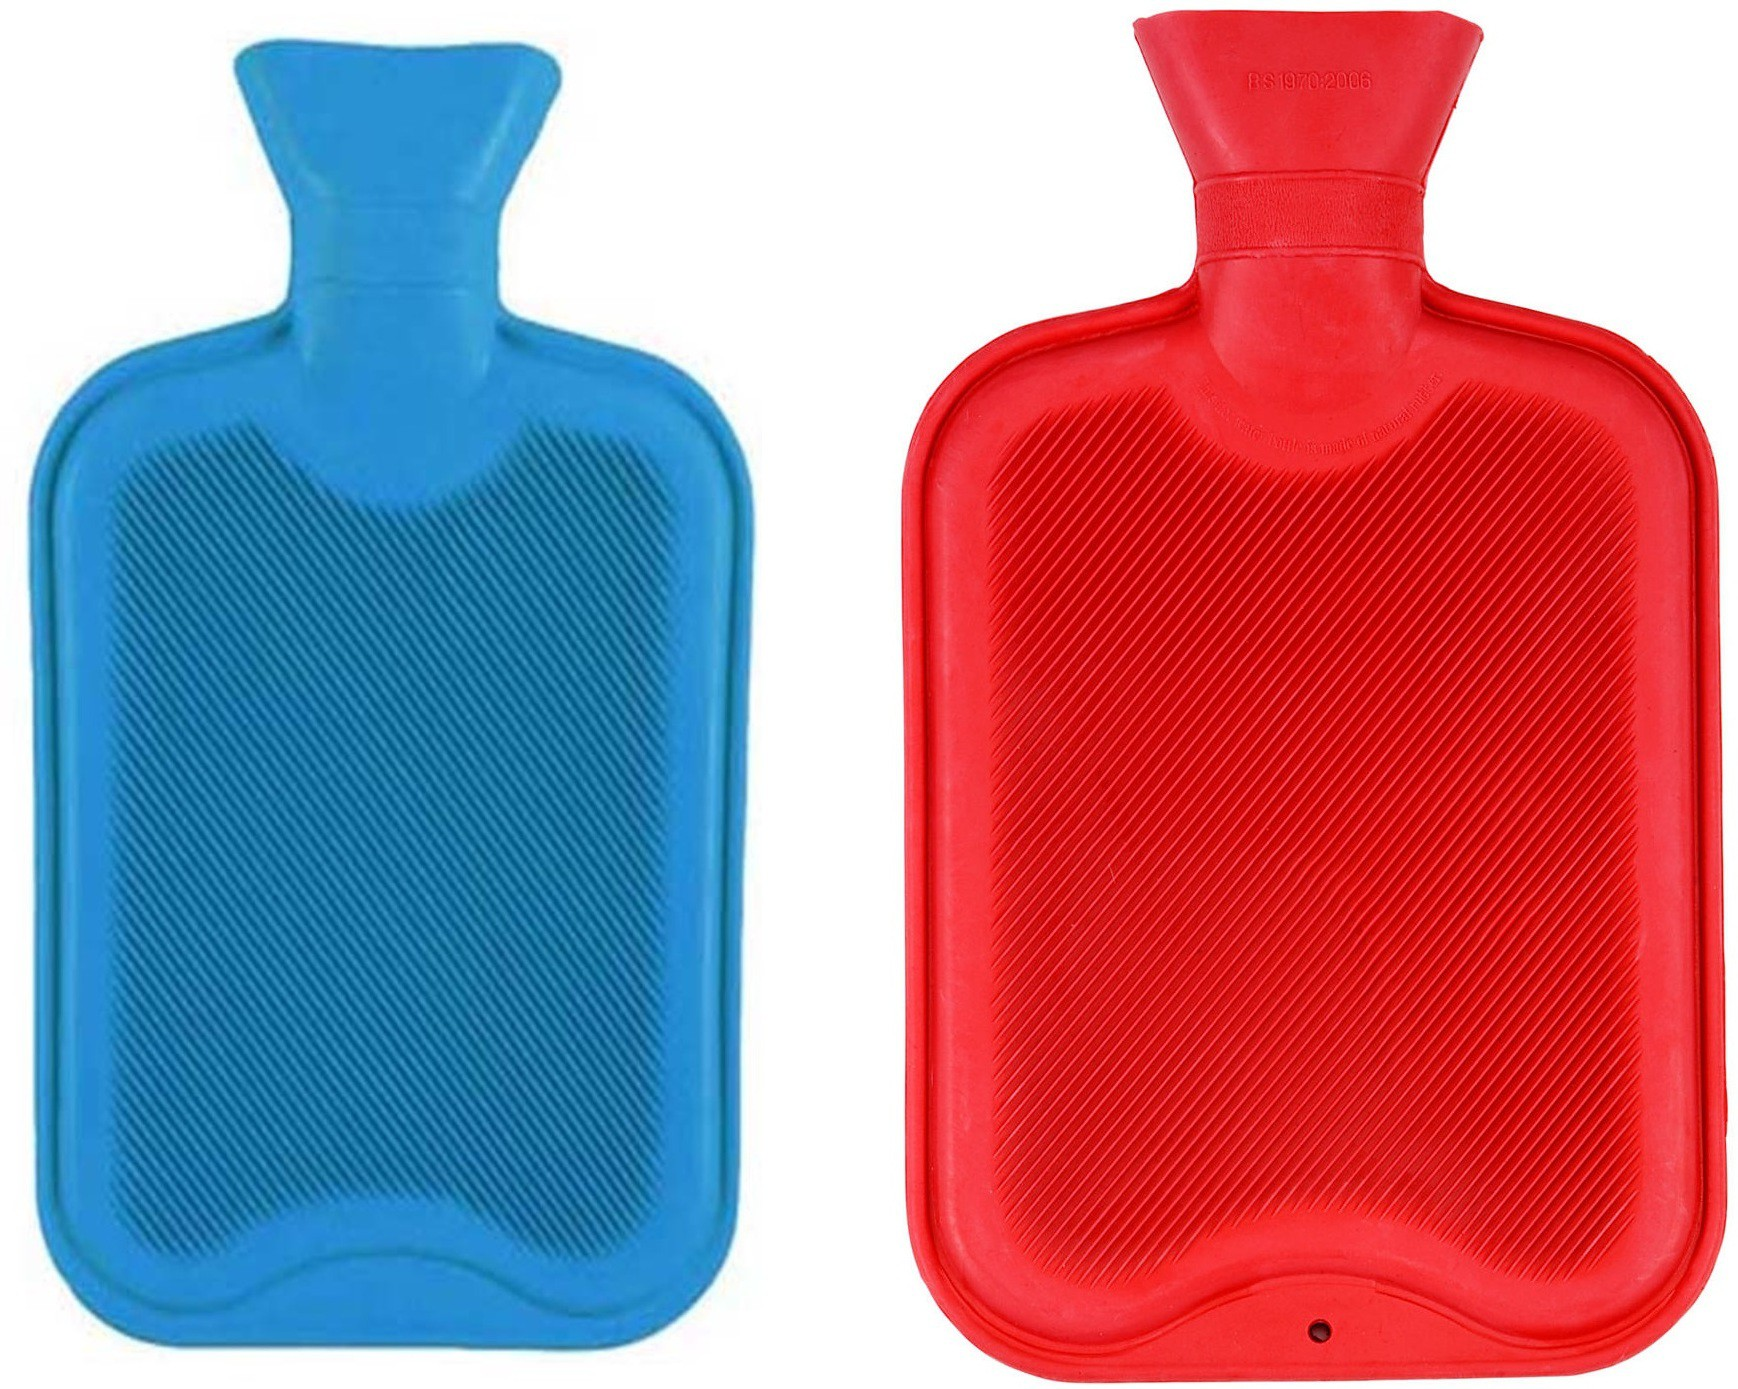 Sphiron Pain Comfort Combos Hot Bag Non-electrical 1.5 L Hot Water Bag(Blue, Red)